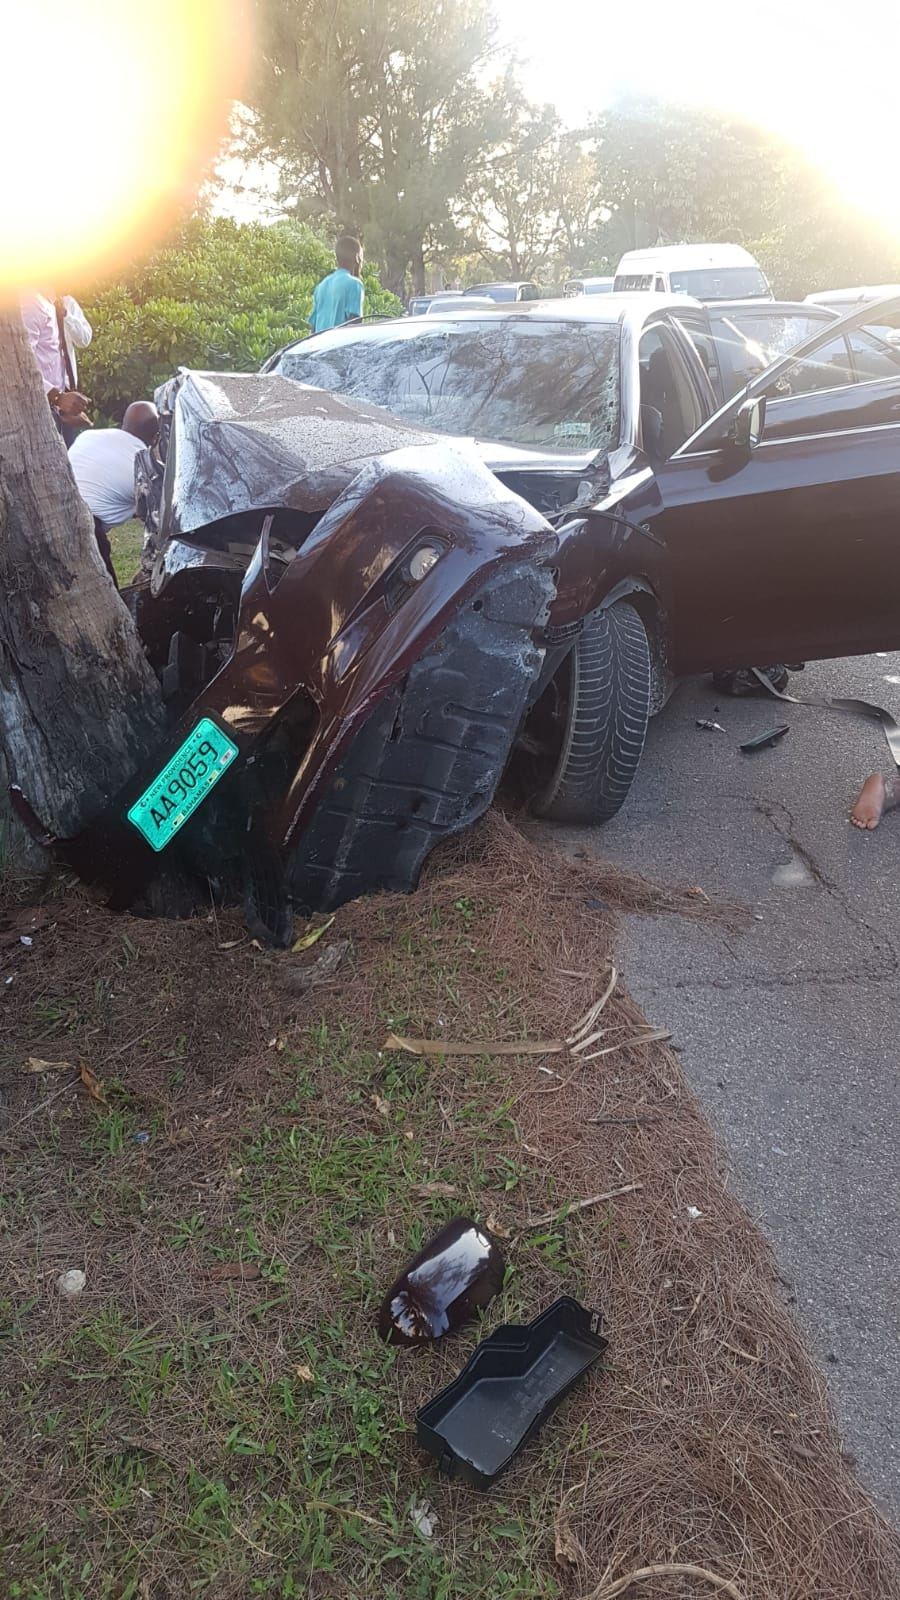 Seven injured in serious traffic accident on West Bay Street